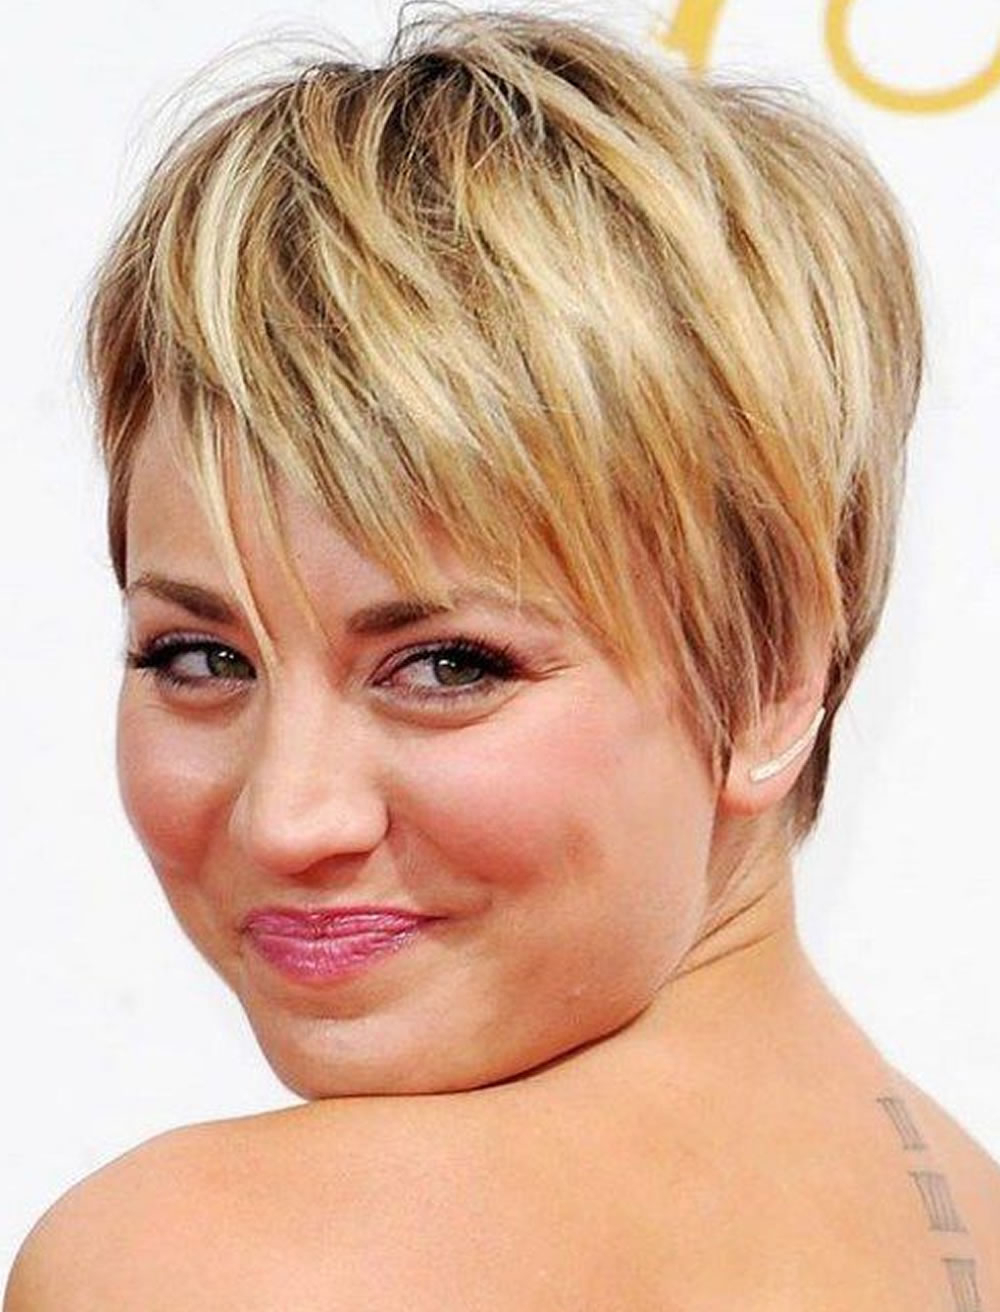 Short Haircuts For Round Face Thin Hair Ideas For 2018 – Page 2 Within Short Hairstyles For A Round Face (View 16 of 25)